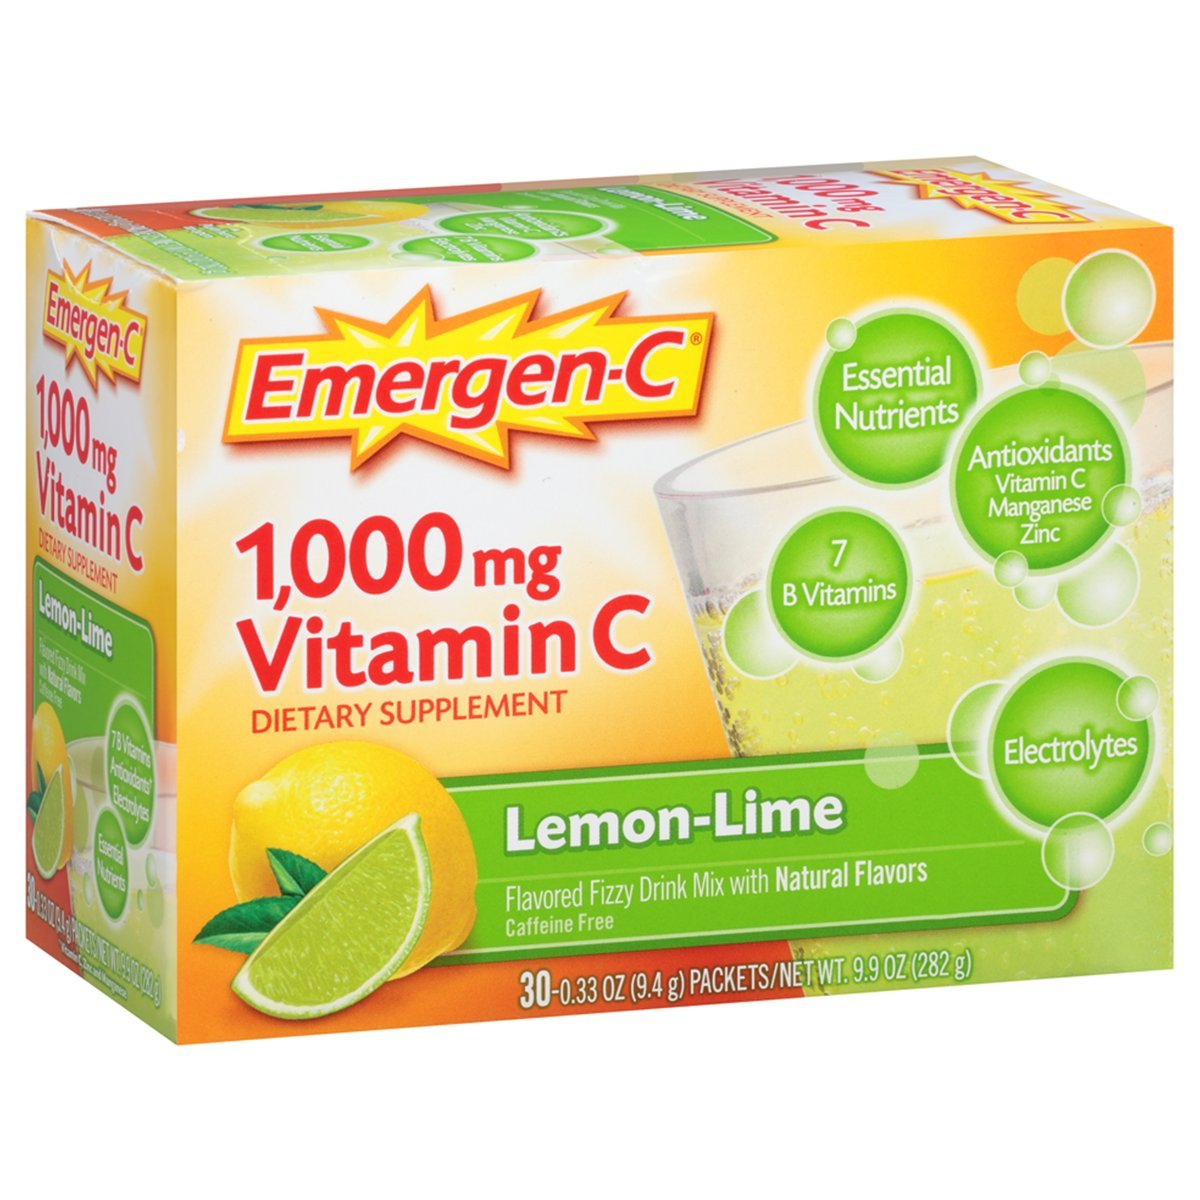 Emergen-C (30 Count, Lemon-Lime Flavor, 1 Month Supply) Dietary Supplement Fizzy Drink Mix with 1000mg Vitamin C, 0.33 Ounce Powder Packets, Caffeine Free